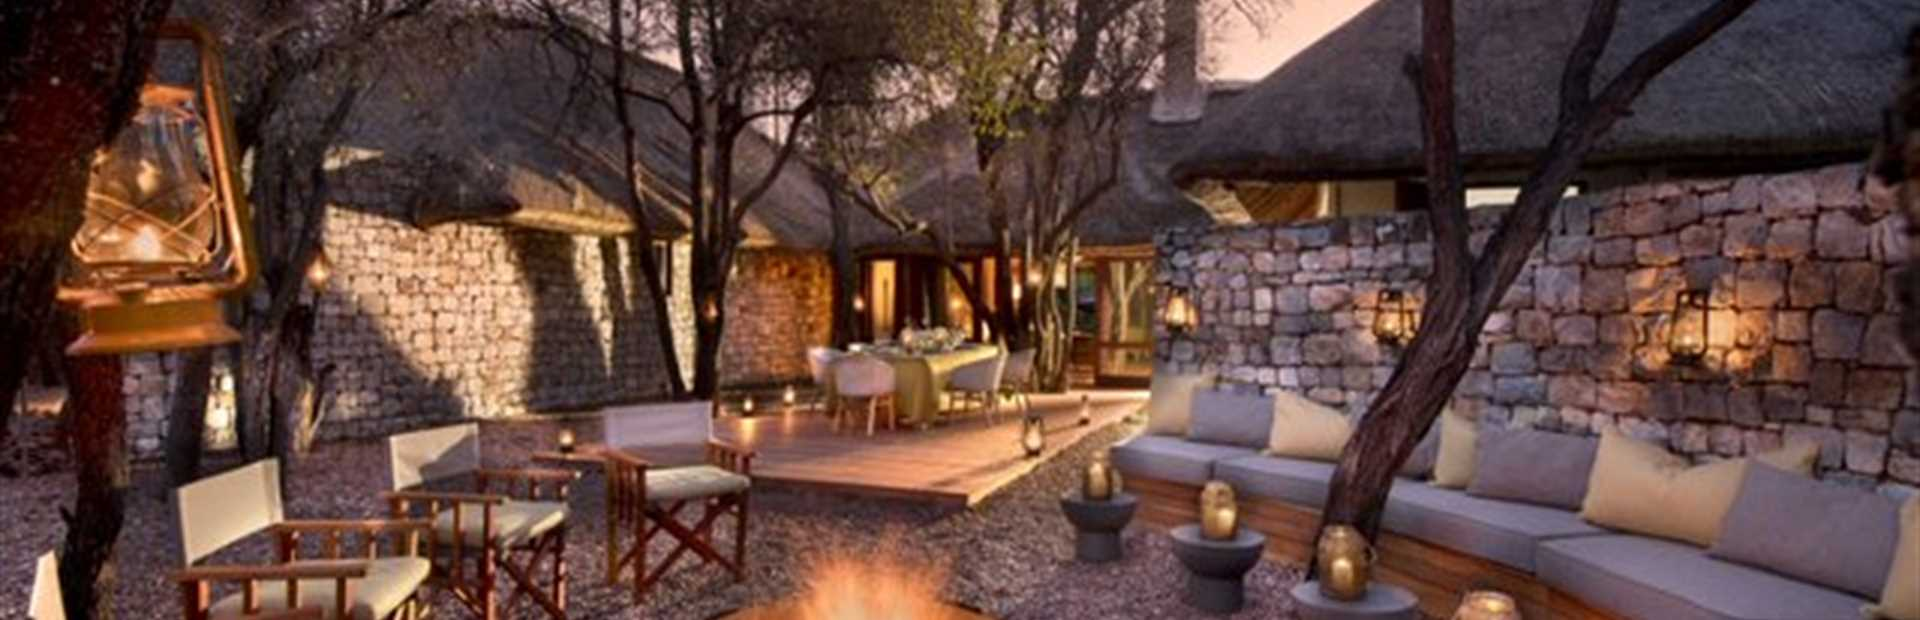 Morukuru River House (private safari house)